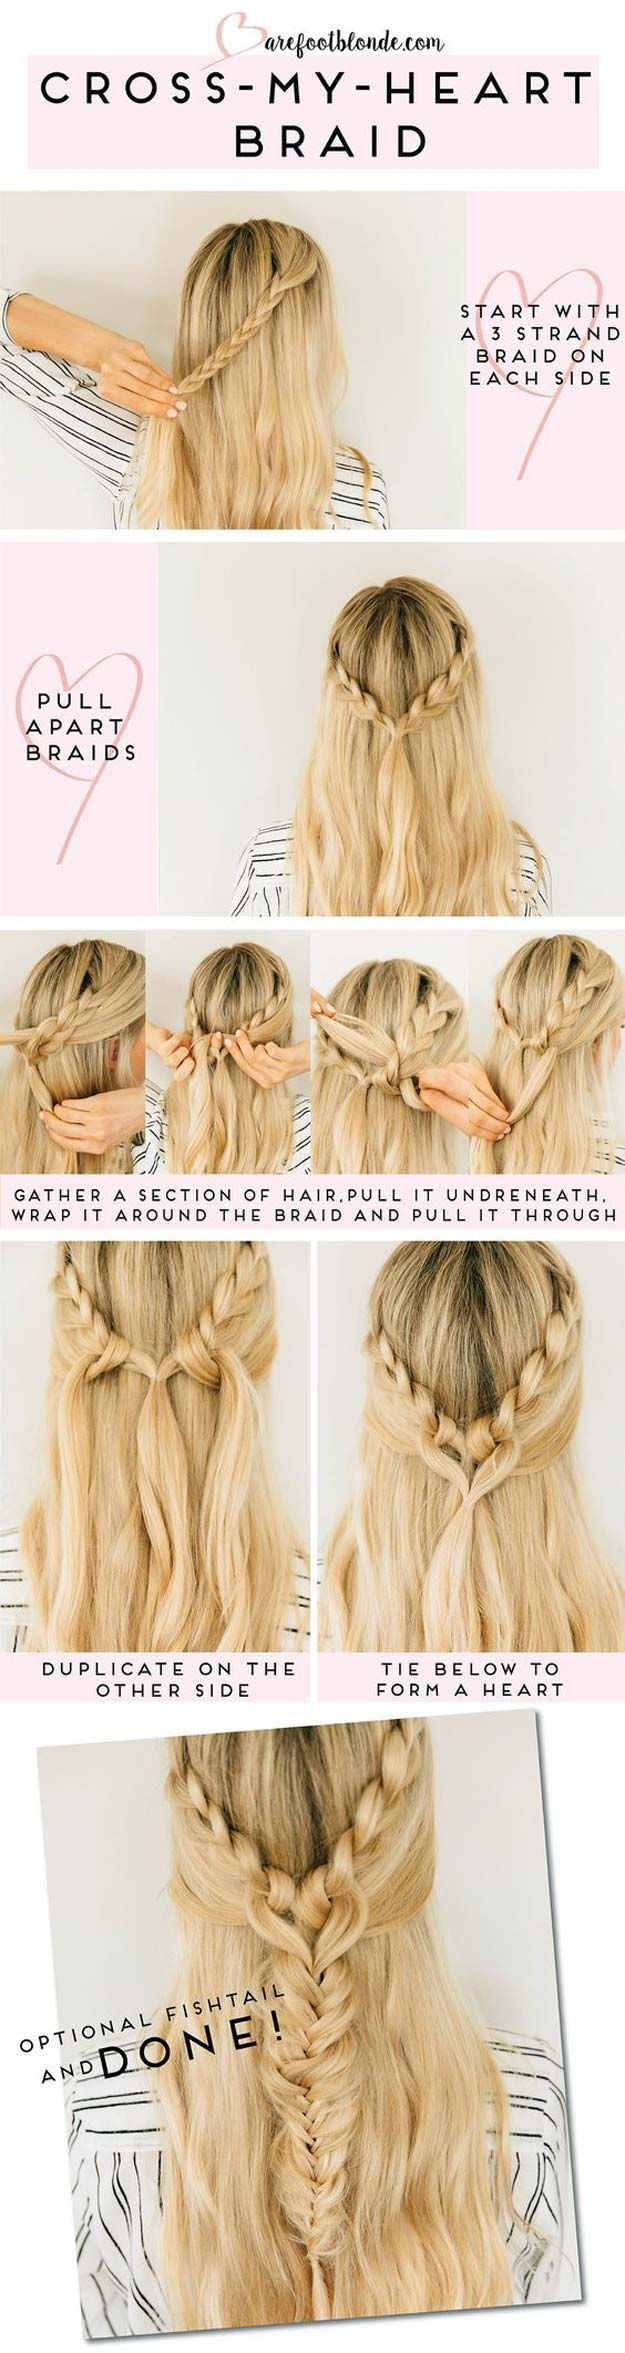 Best Hair Braiding Tutorials - Cross My Heart Braid - Easy Step by Step Tutorials for Braids - How To Braid Fishtail, French Braids, Flower Crown, Side Braids, Cornrows, Updos - Cool Braided Hairstyles for Girls, Teens and Women - School, Day and Evening, Boho, Casual and Formal Looks diyprojectsfortee...